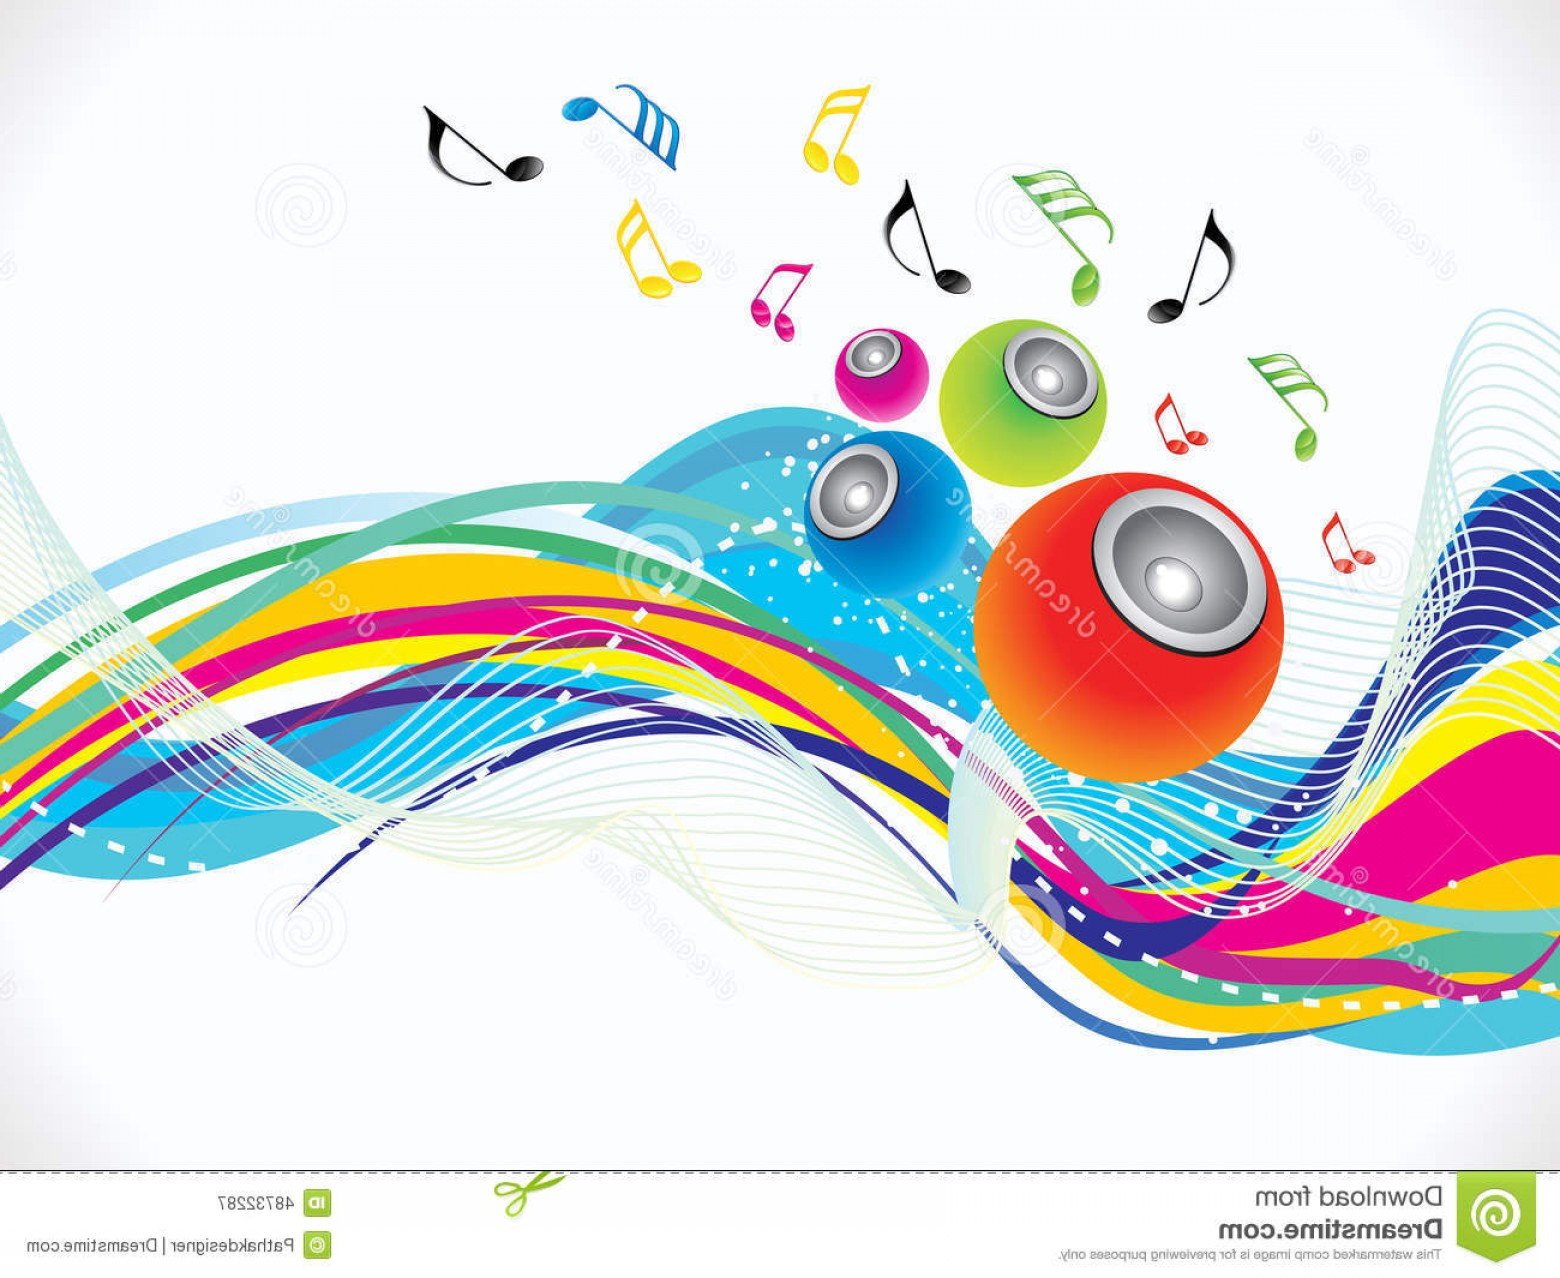 Gospel Music Background Vector: Stock Illustration Abstract Colorful Musical Wave Background Vector Illustration Image